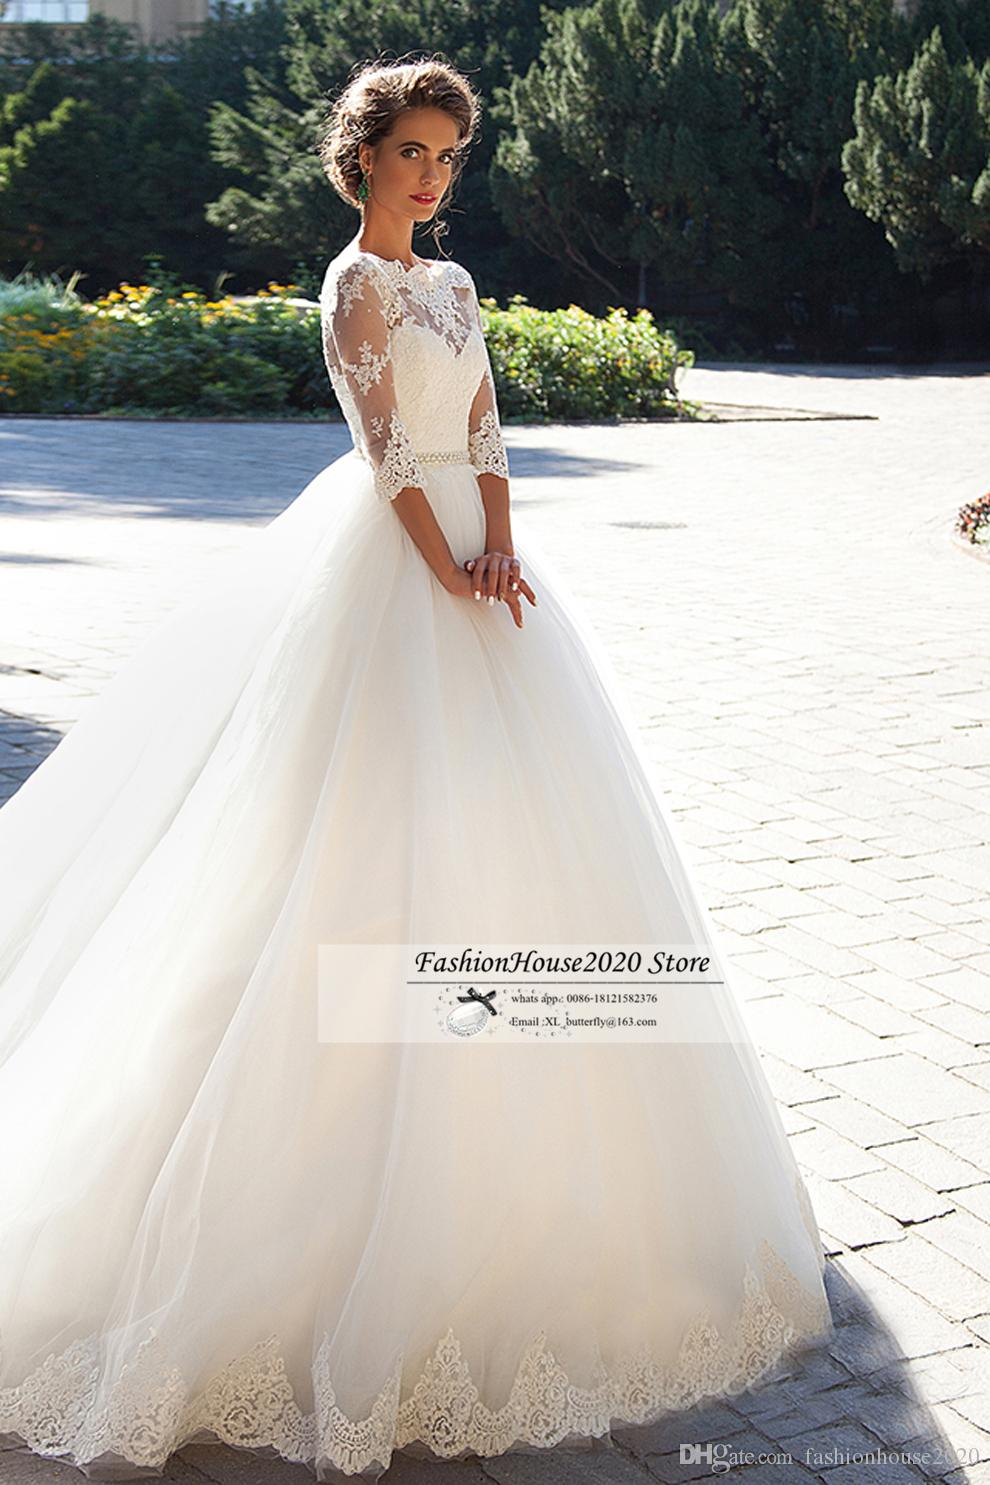 2020 Cheap Vintage Lace Long Sleeve Wedding Dresses New Applique Beaded Sexy Lace Back Long Train Wedding Bridal Gowns Cheap Bride Dresses